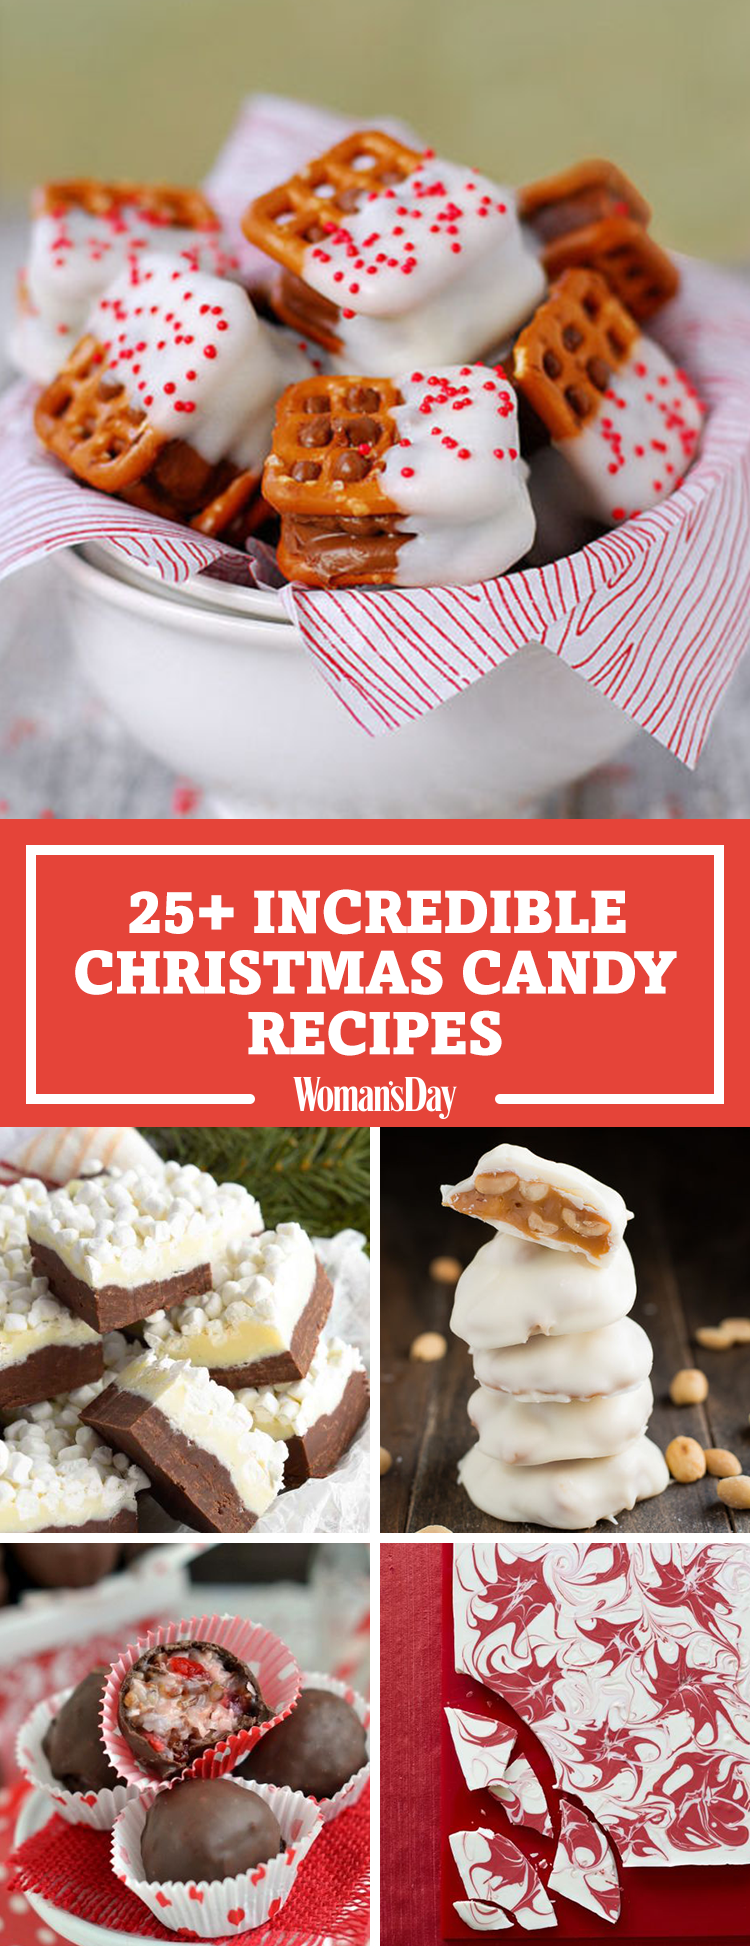 28 Homemade Christmas Candy Recipes How To Make Your Own Holiday Candy